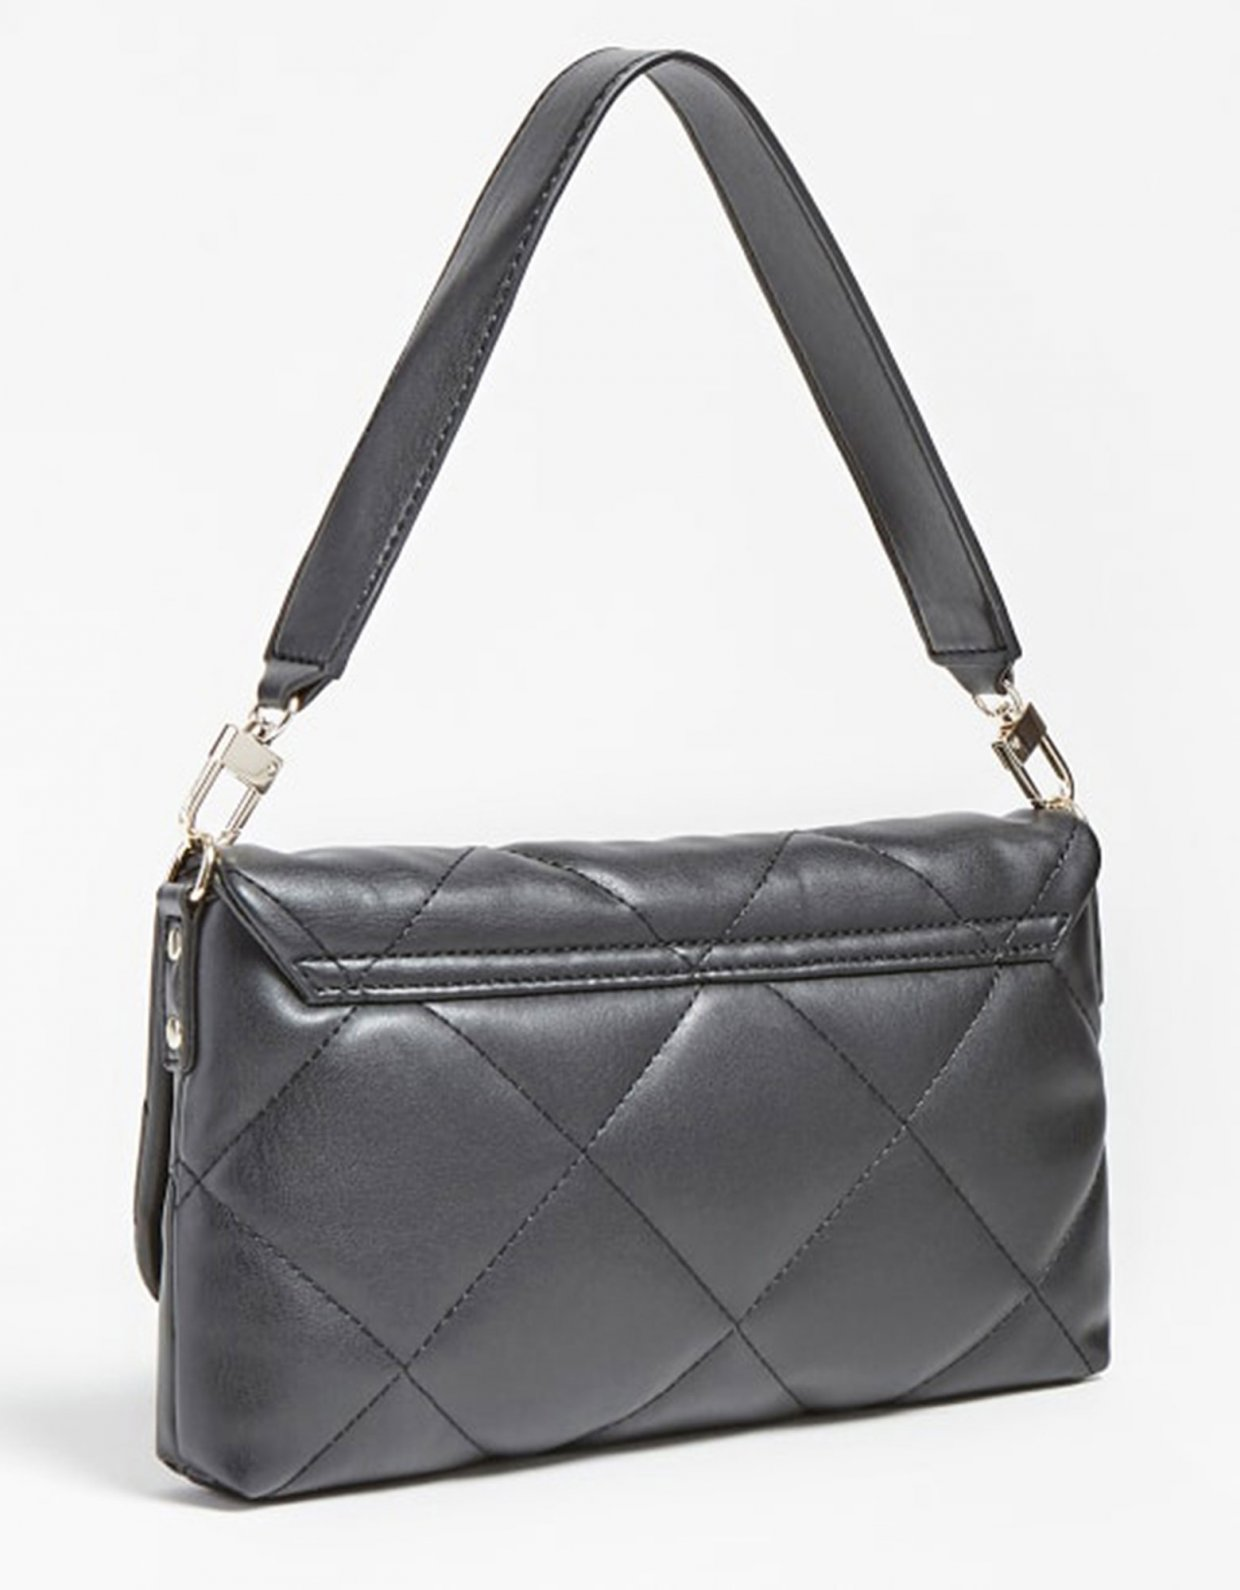 Guess Brightside quilted shoulder bag black